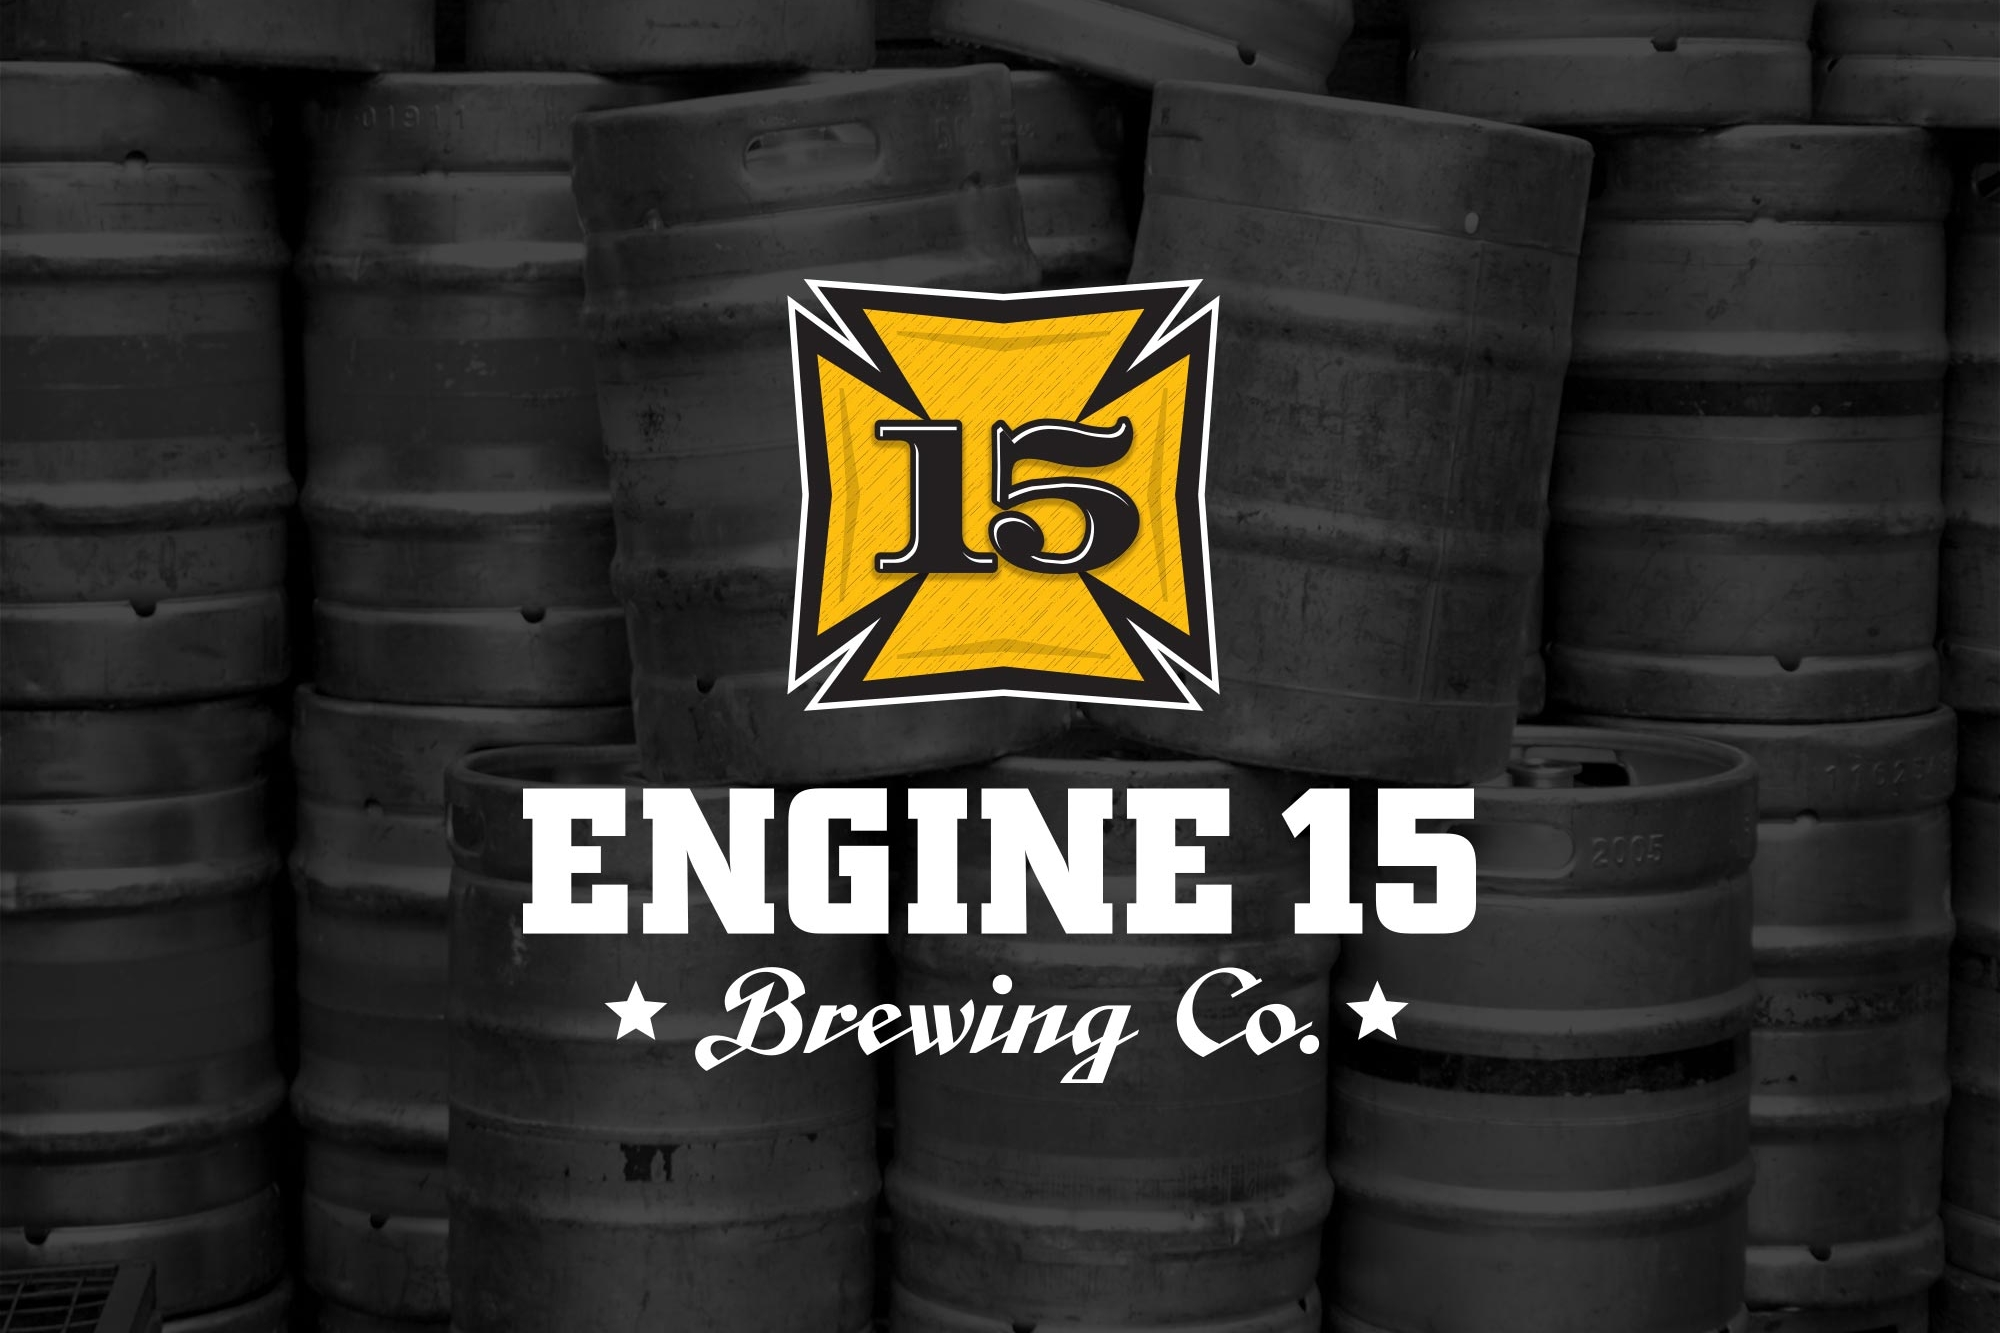 Engine 15 Brewing - Branding